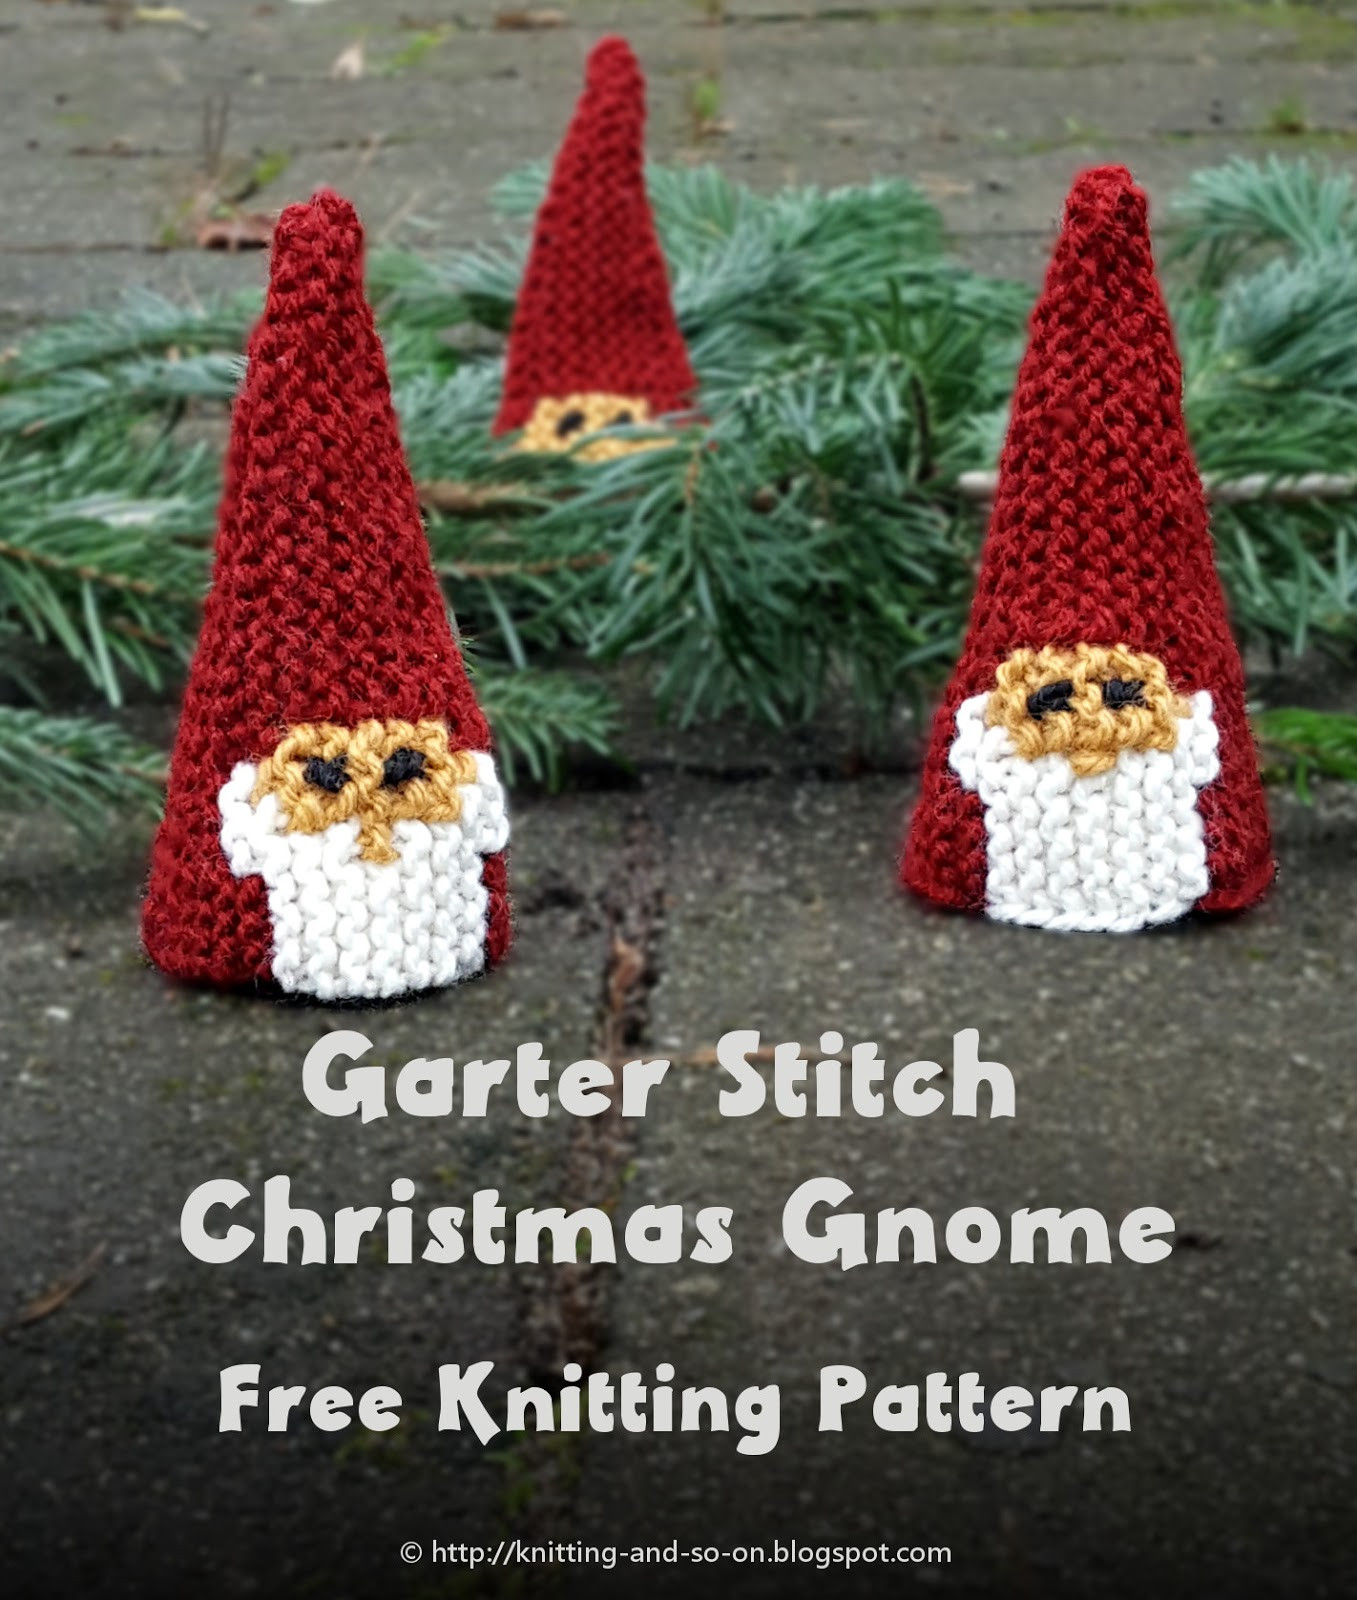 Christmas Knitting Patterns Unique Knitting and so On Garter Stitch Christmas Gnome Of Contemporary 44 Pics Christmas Knitting Patterns